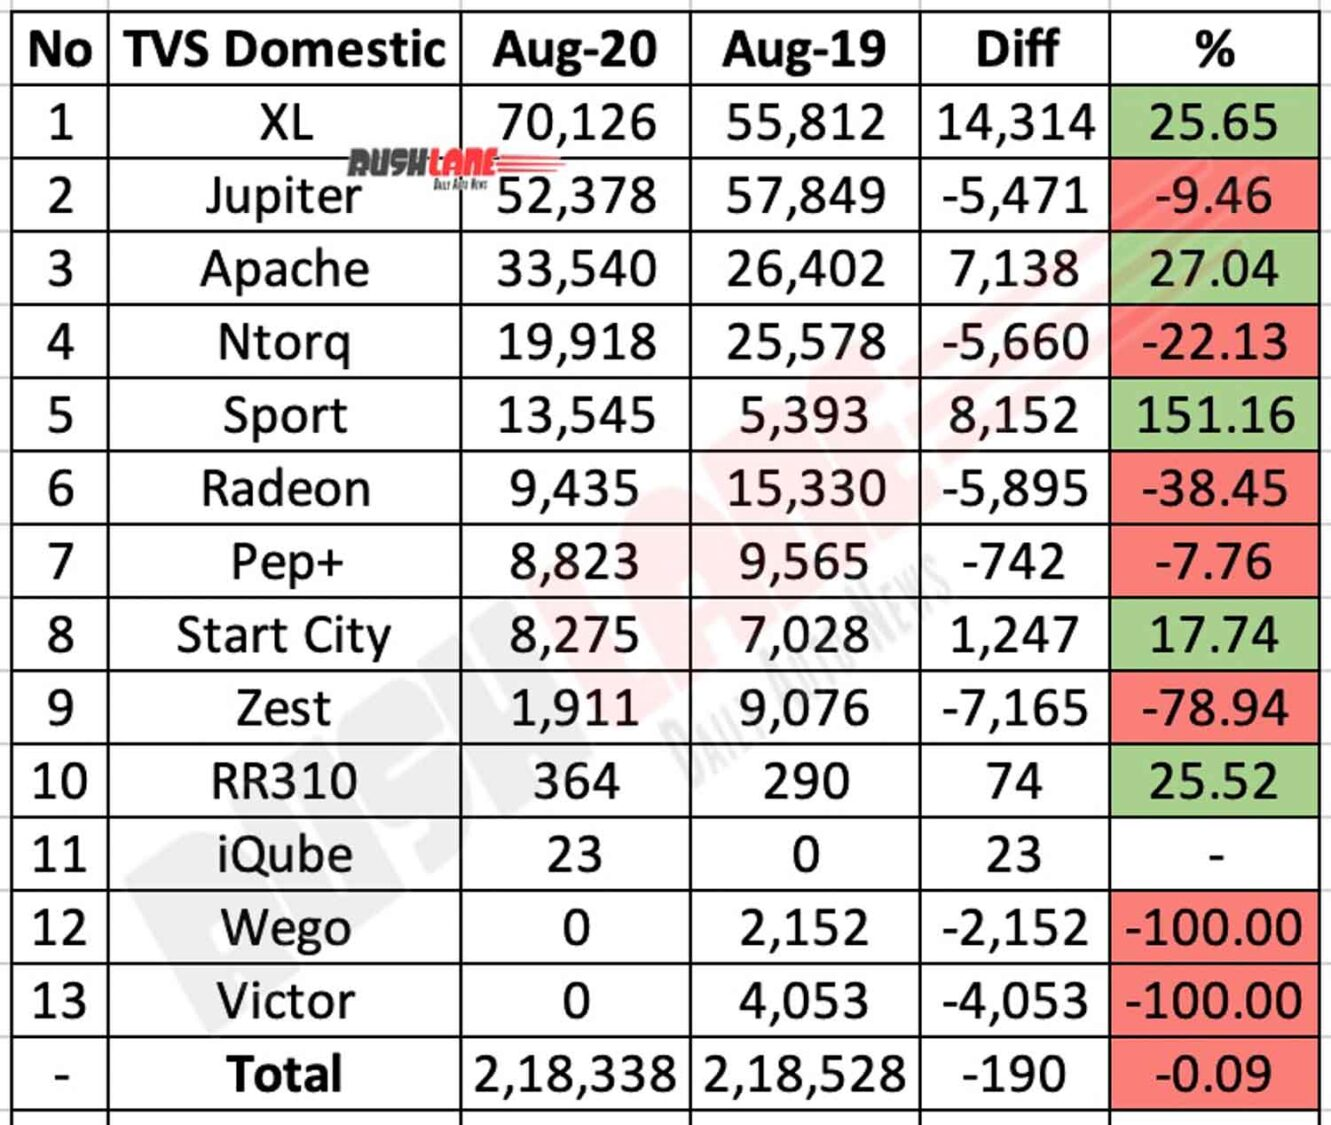 TVS Domestic Sales Aug 2020